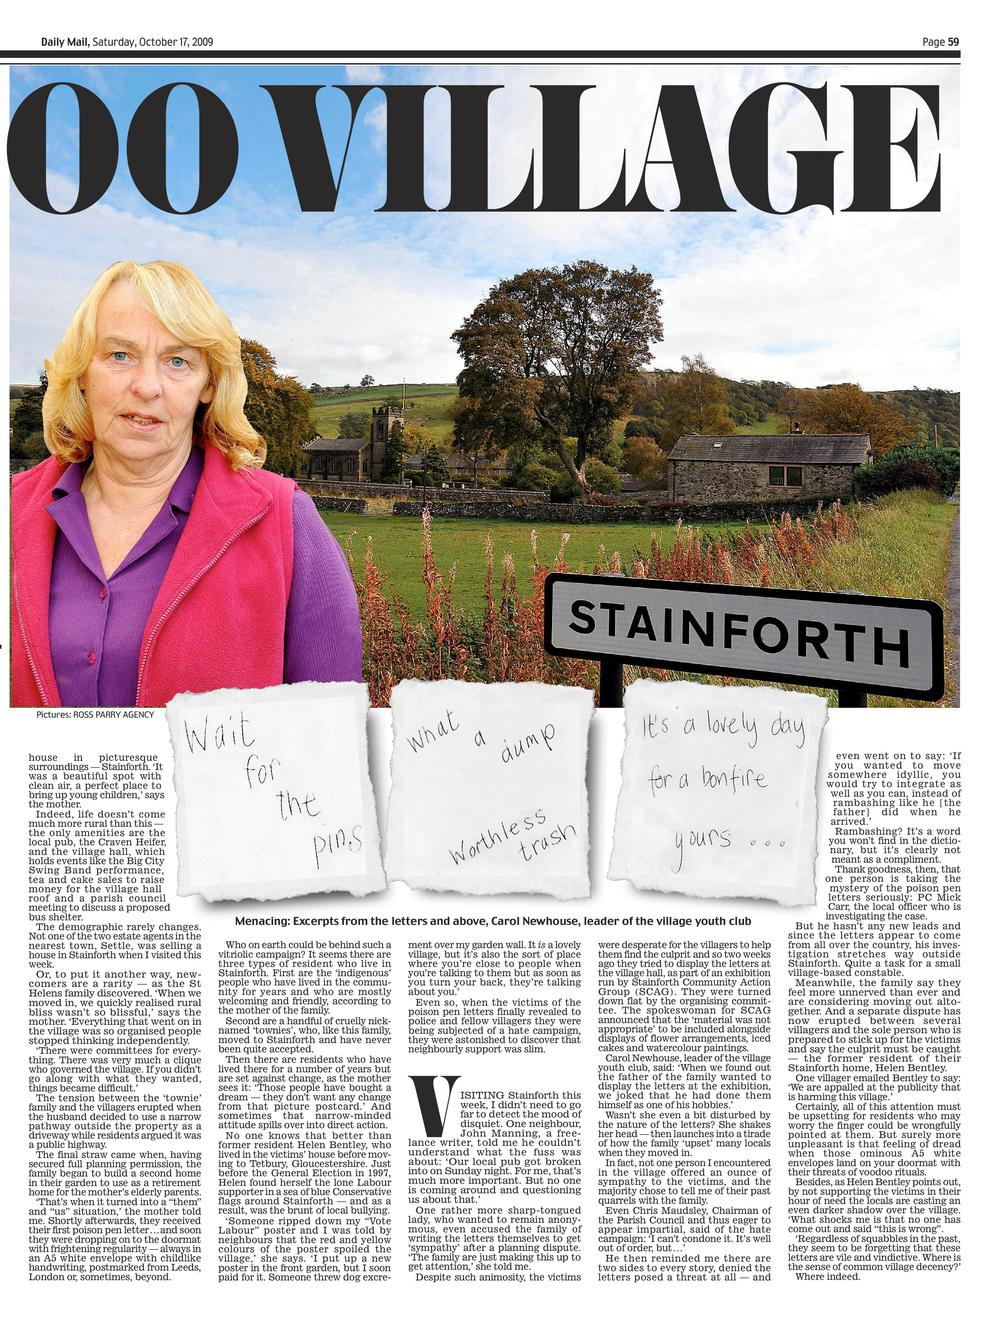 Voodoo village  Poison pen letters and a village at war  Daily Mail